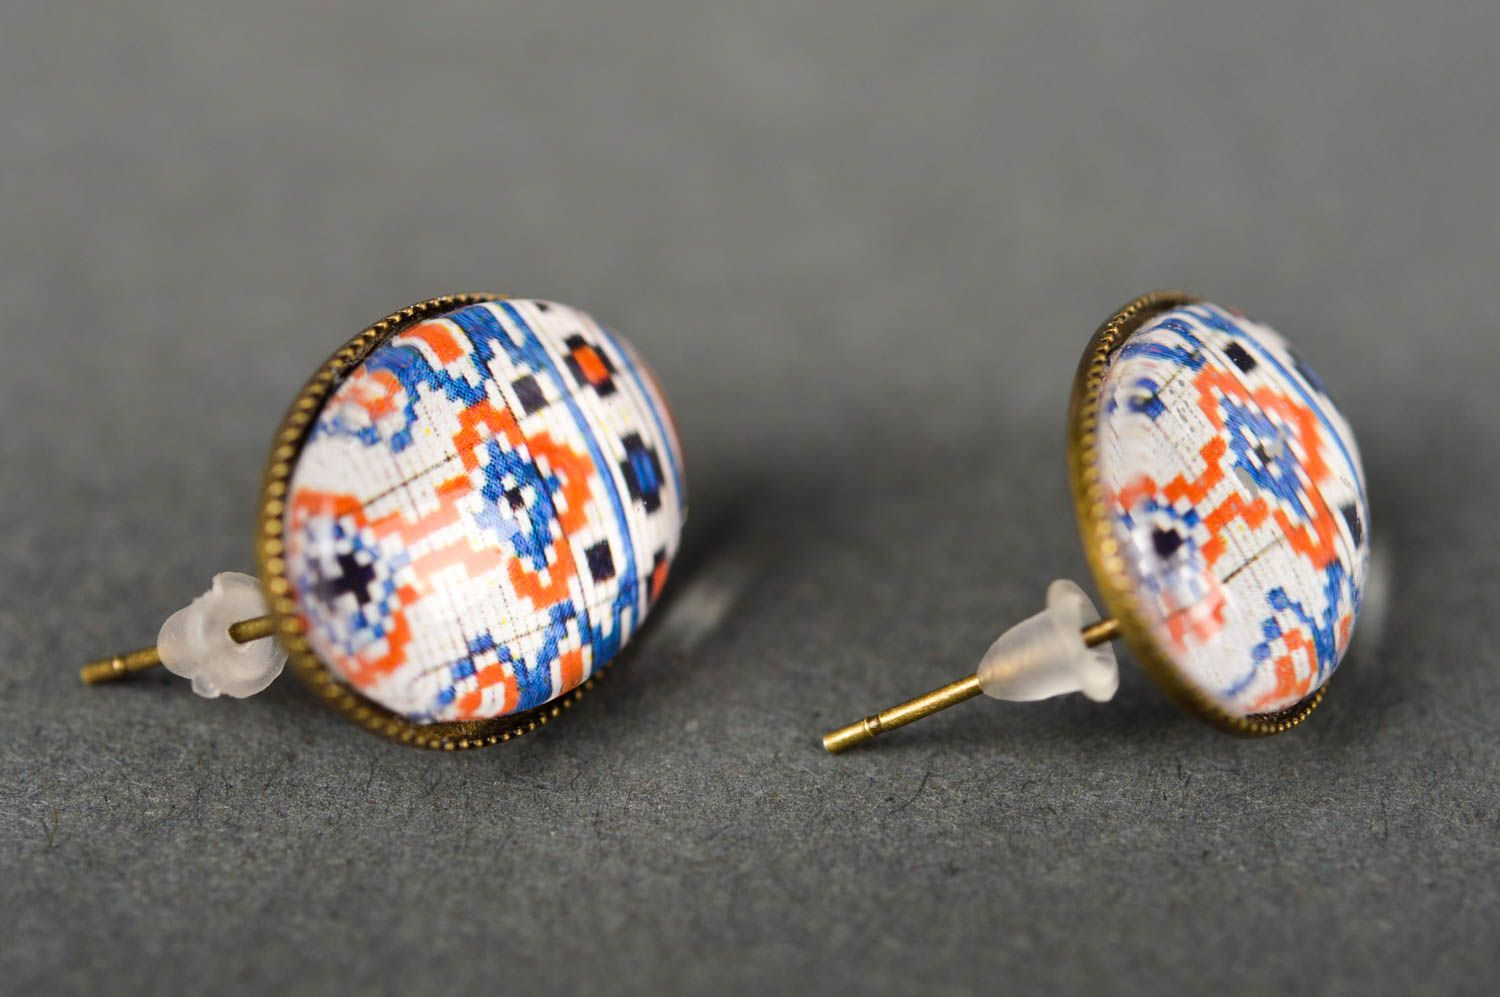 Handmade earrings with print cabochon jewelry elegant earrings with charms photo 5